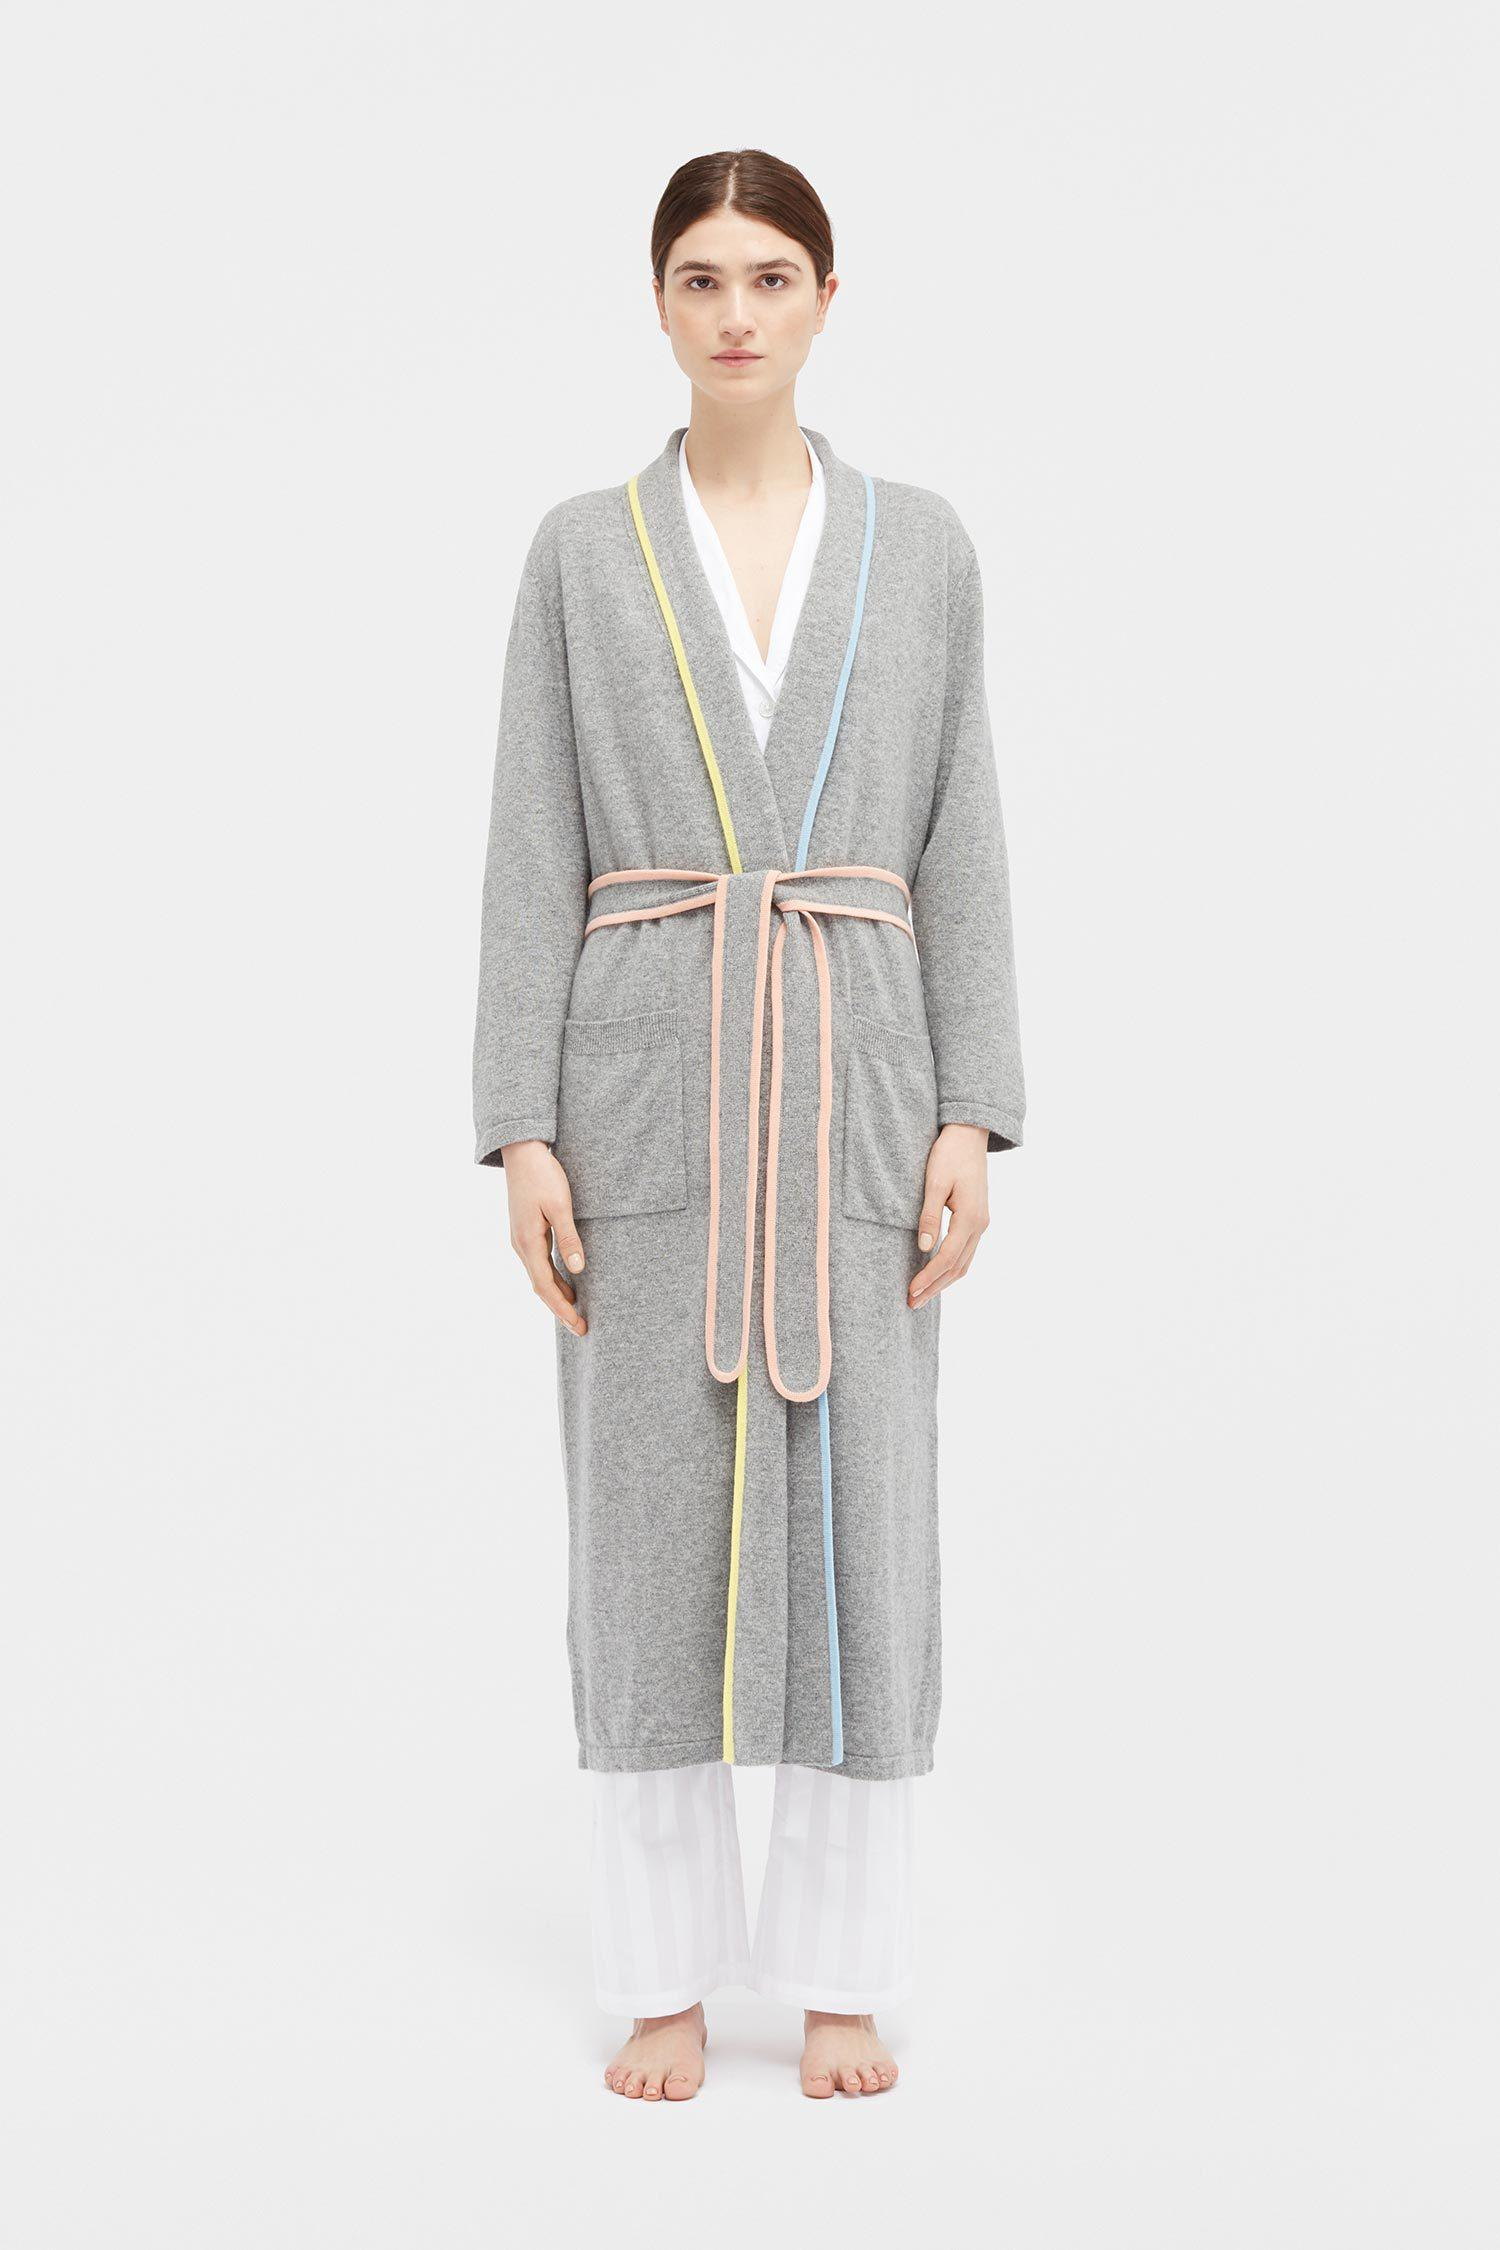 6cd55f1a1b Lyst - Chinti   Parker Grey Cashmere Belted Dressing Gown in Gray